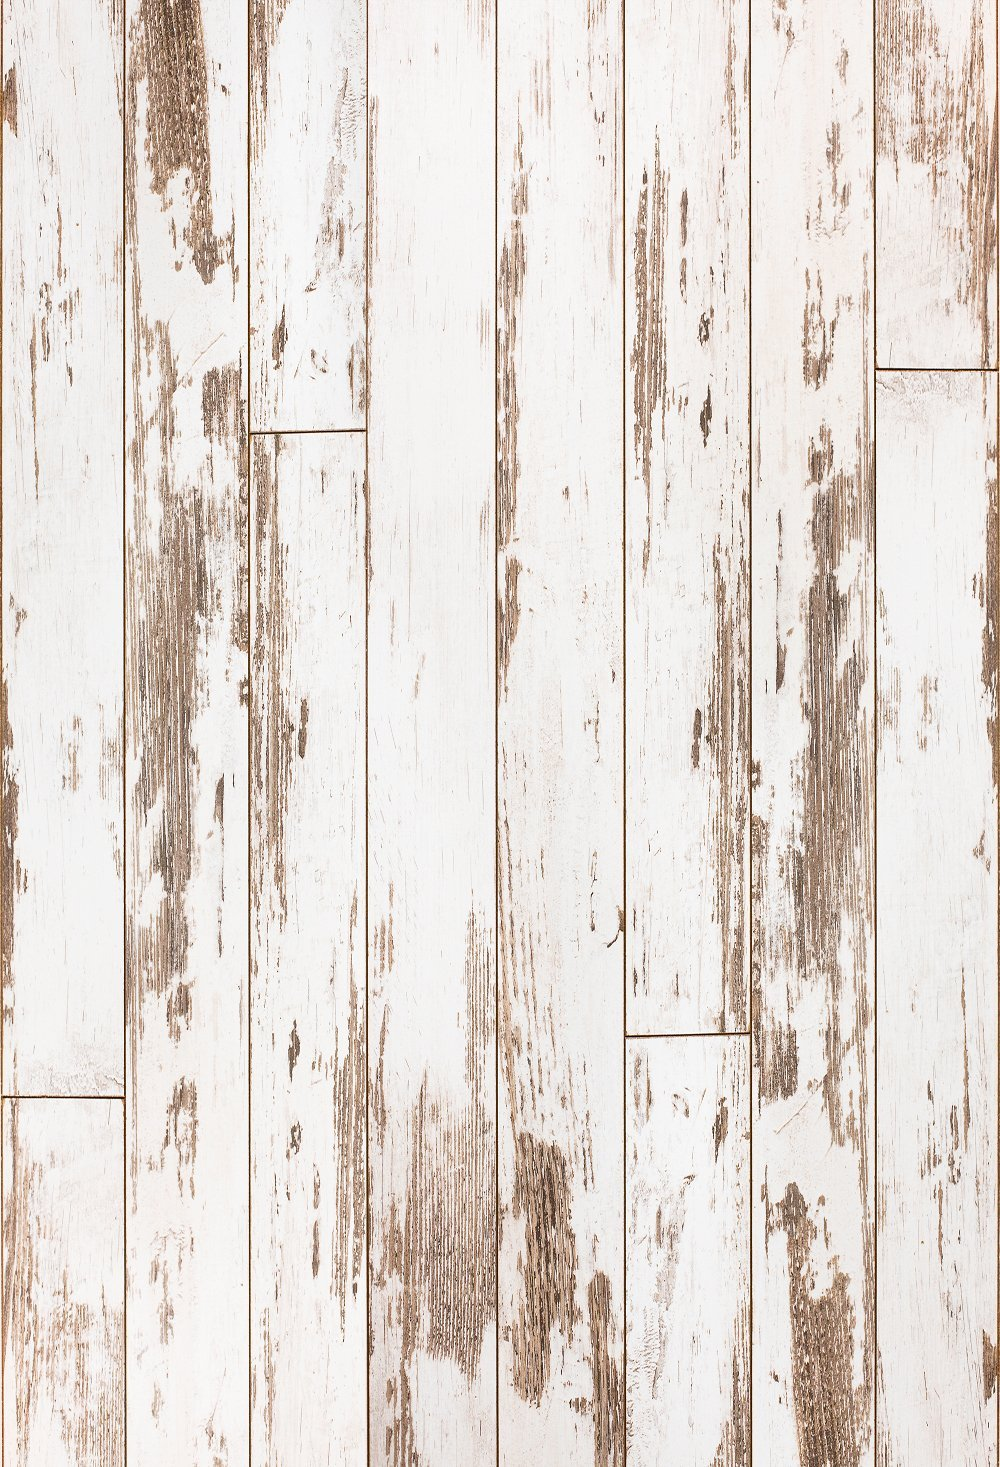 Free Shipping Buy Hellodecor Polyster 5x7ft Photography Backdrop Paper White Vintage Wood Background Photography Woods Photography Photography Backdrop Paper